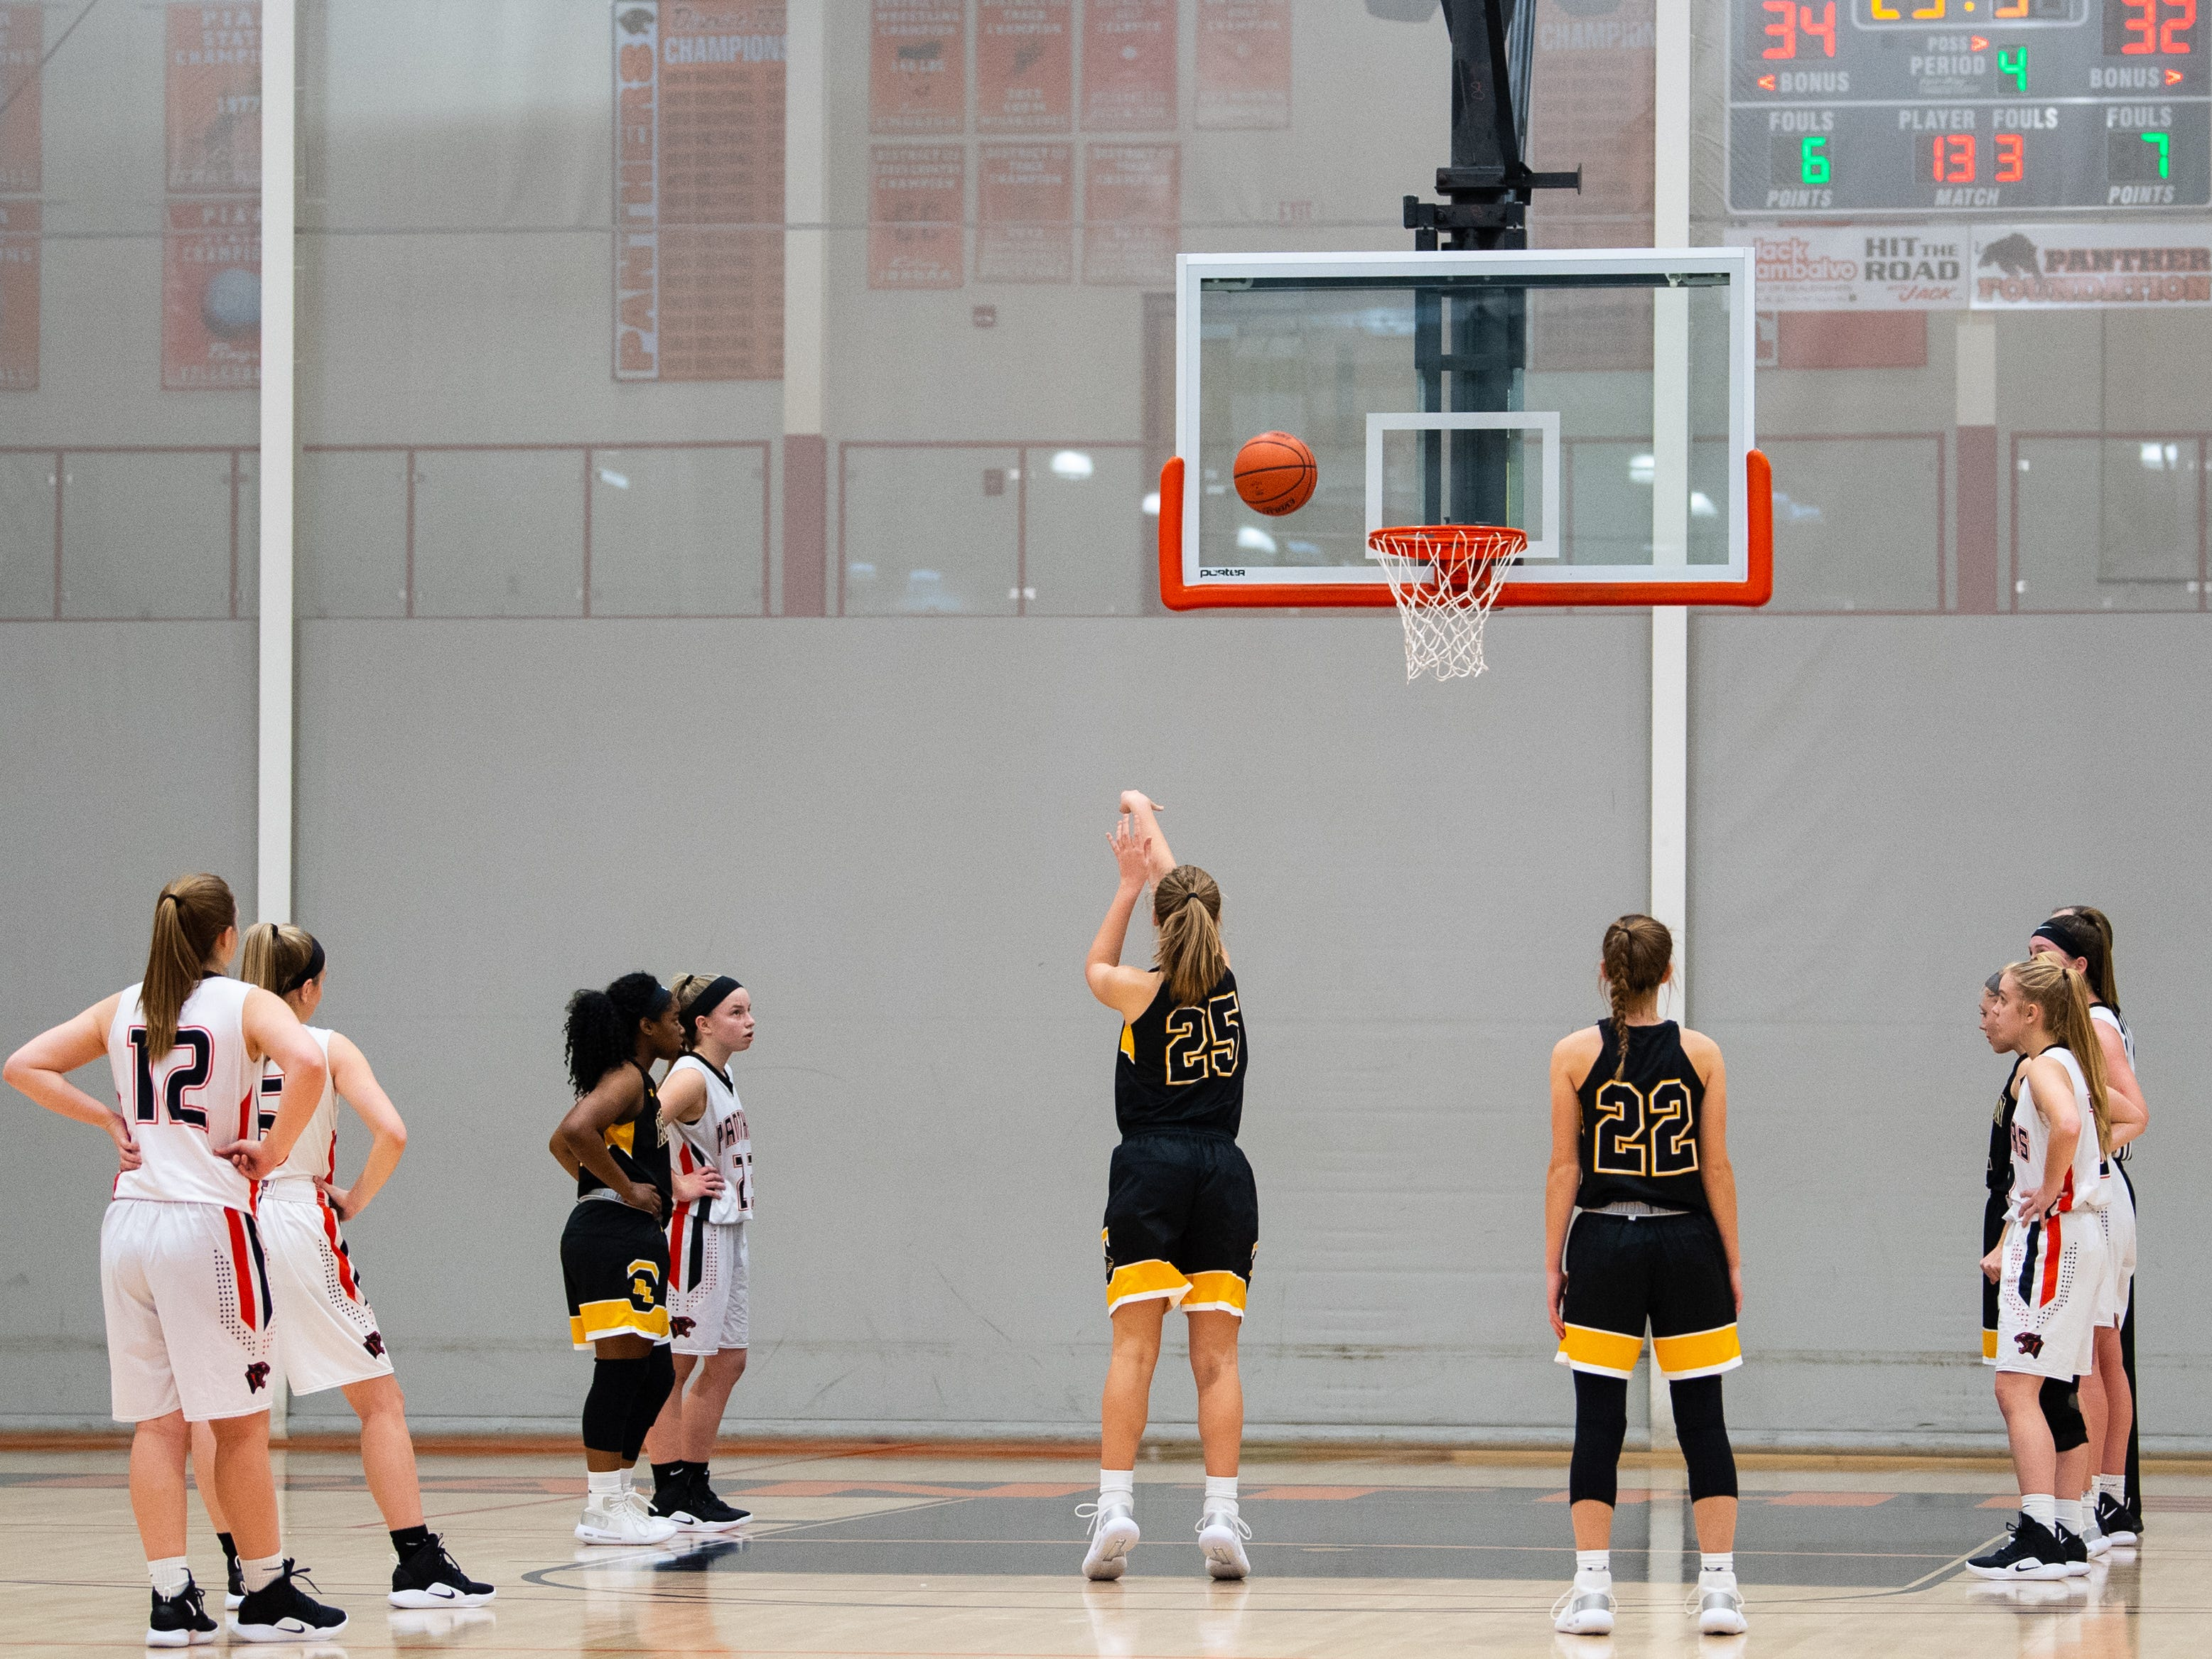 Red Lion takes the free throw during the girls' basketball game between Central York and Red Lion at Central York, Tuesday, December 11, 2018. The Panthers defeated the Lions 40-38.